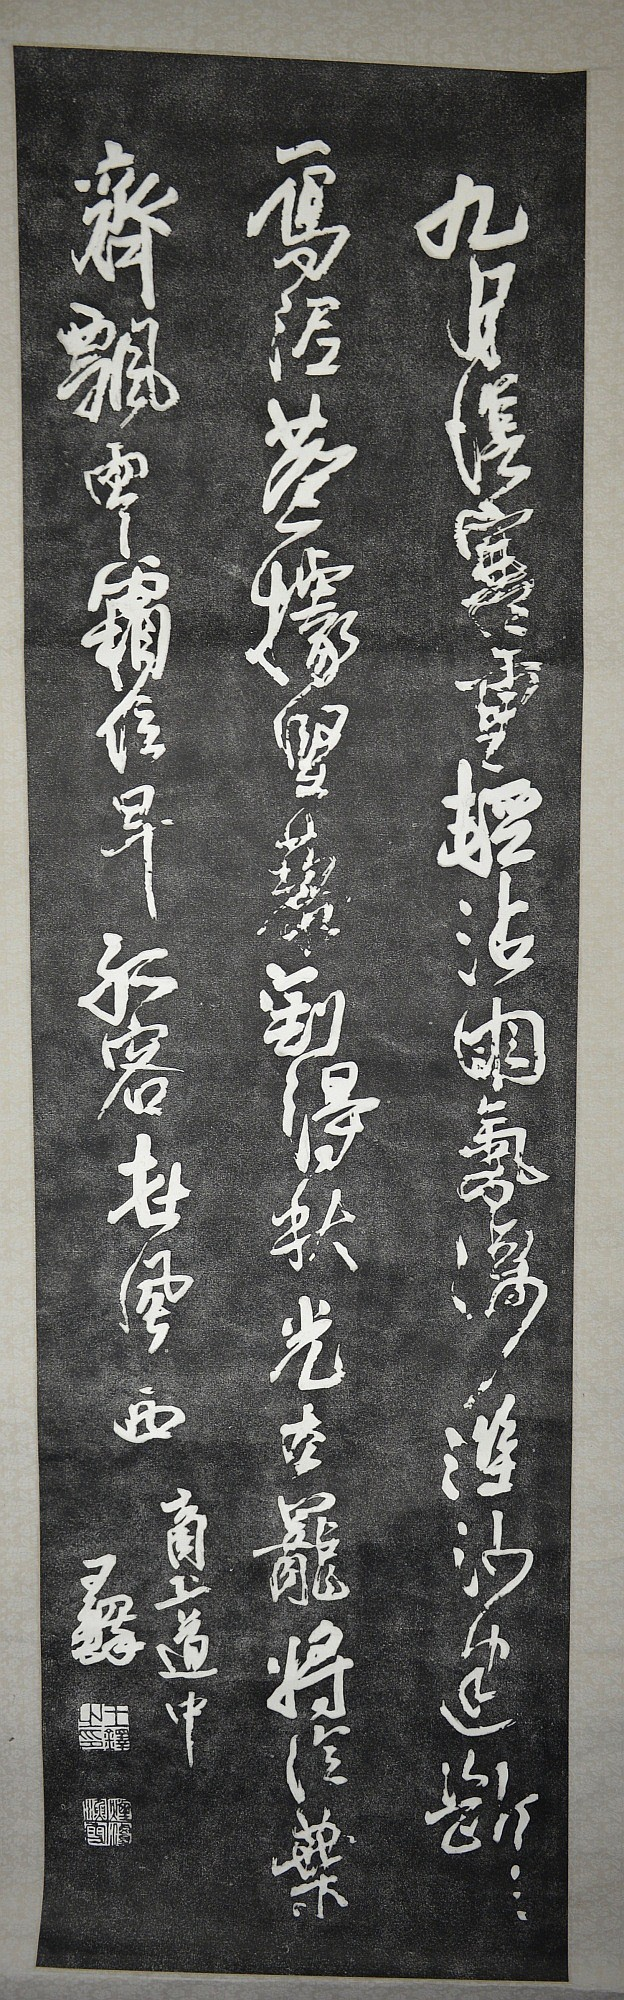 Silk Screen of Calligraphy on Paper Scroll